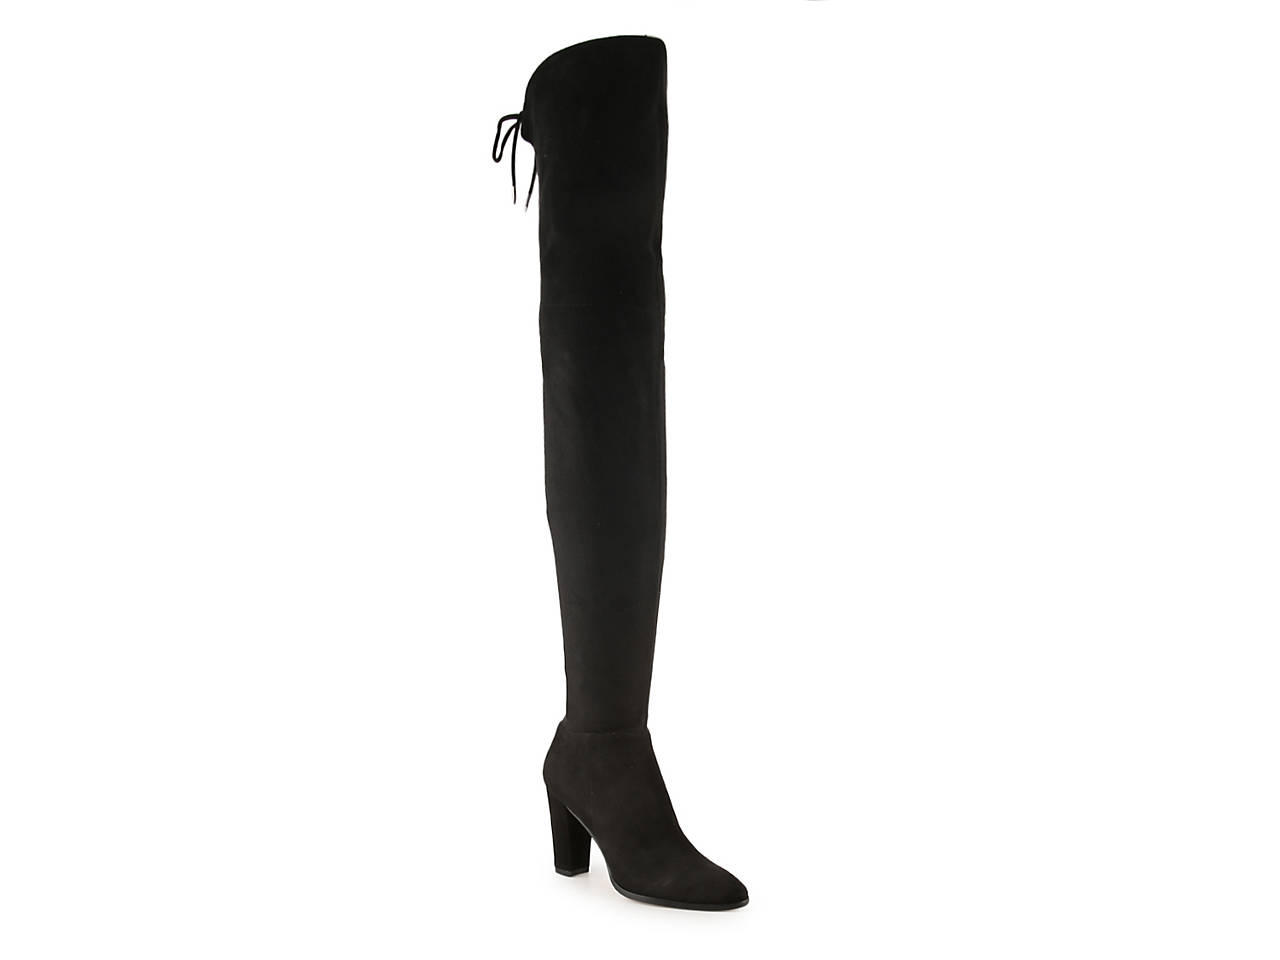 b441961ee26 Dolce Vita Marion Over the Knee Boot Women s Shoes